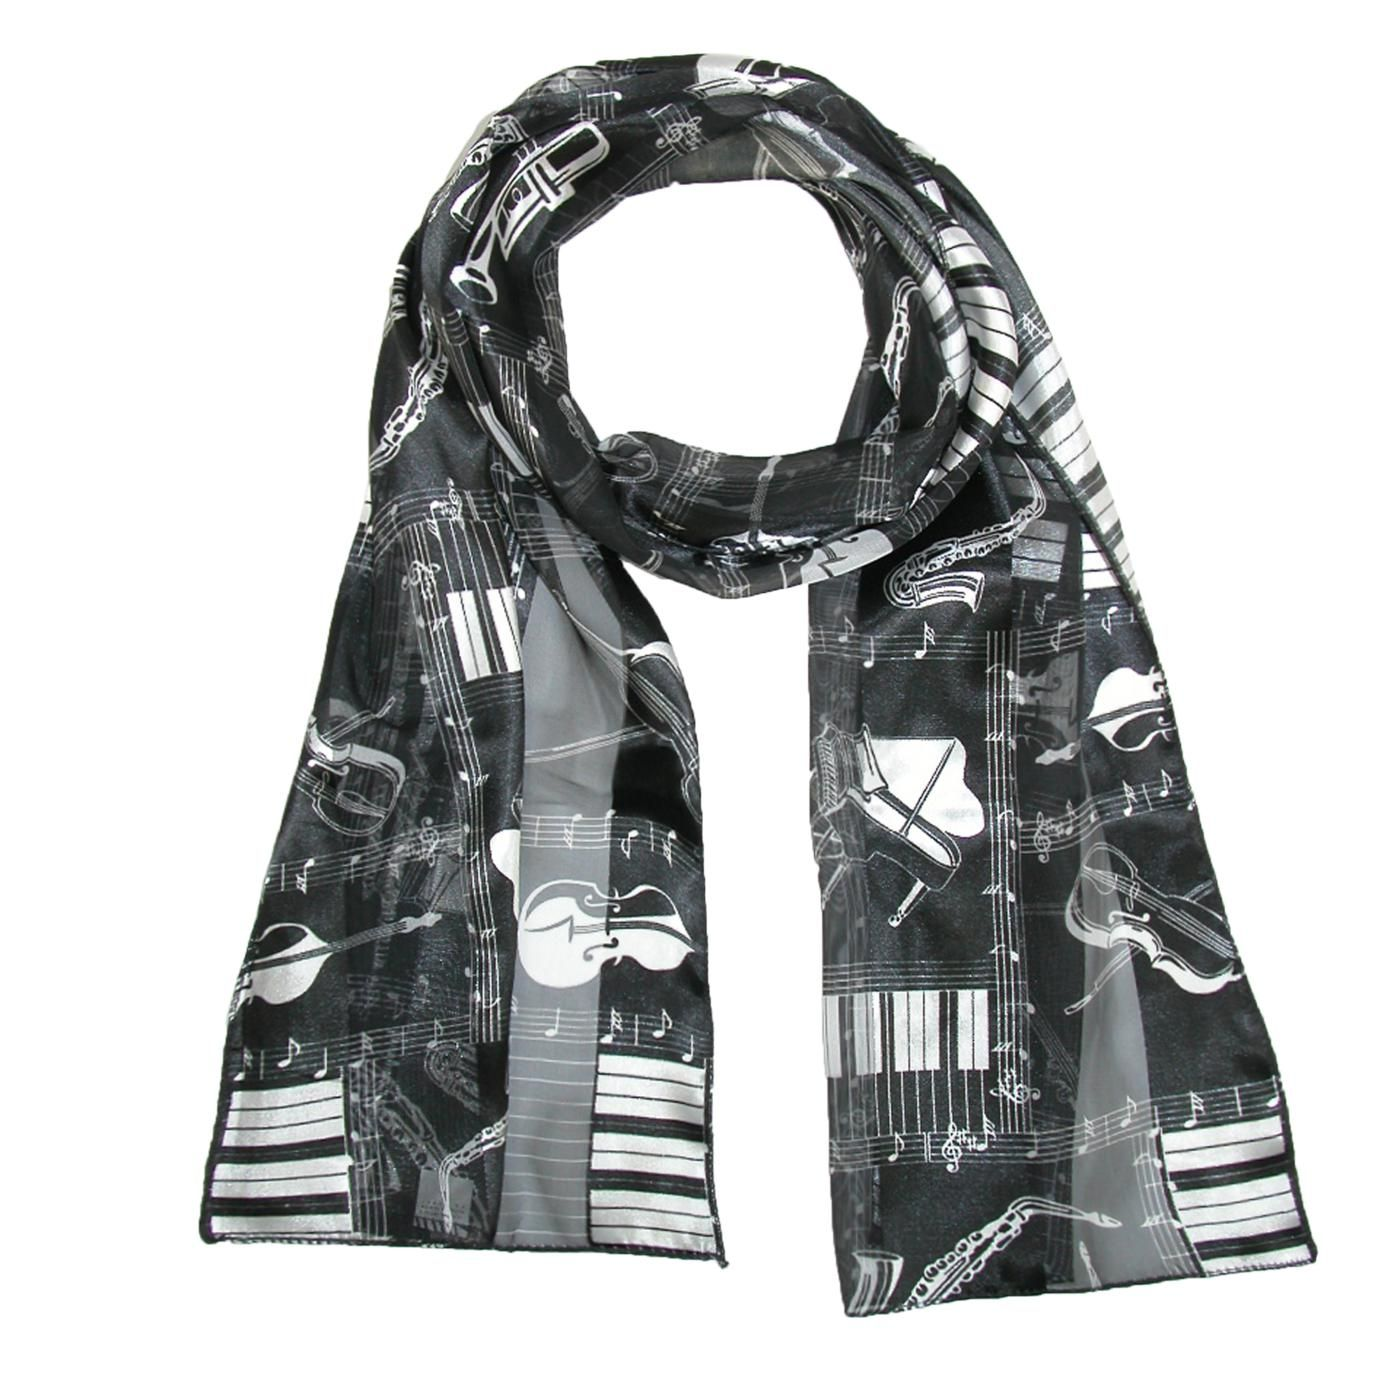 CTM® Womens Musical Instrument Print Scarf. Musical notes and instrument print design